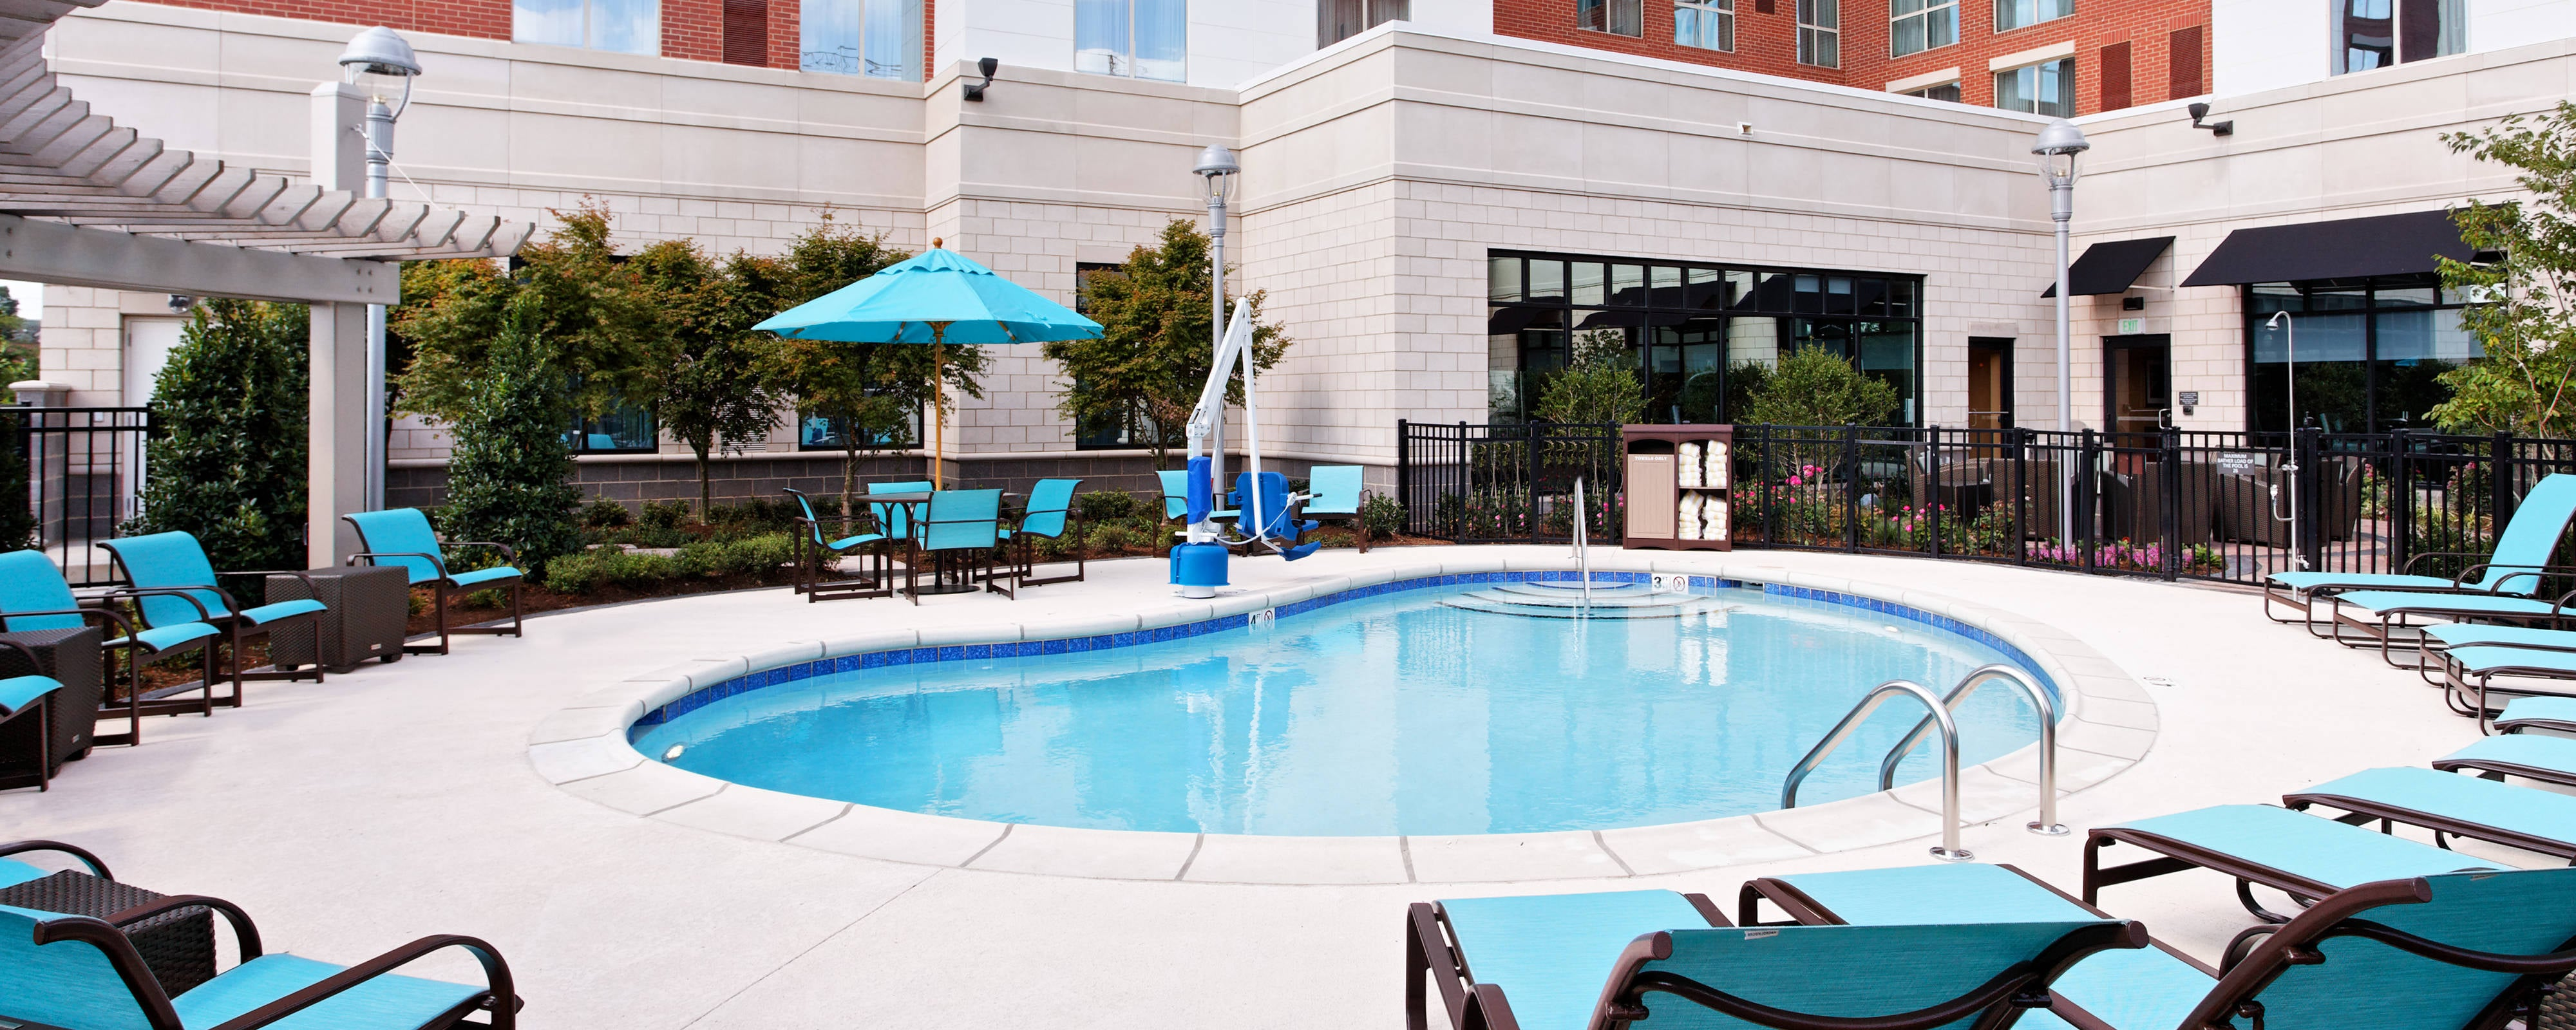 Hotelpool in Little Rock